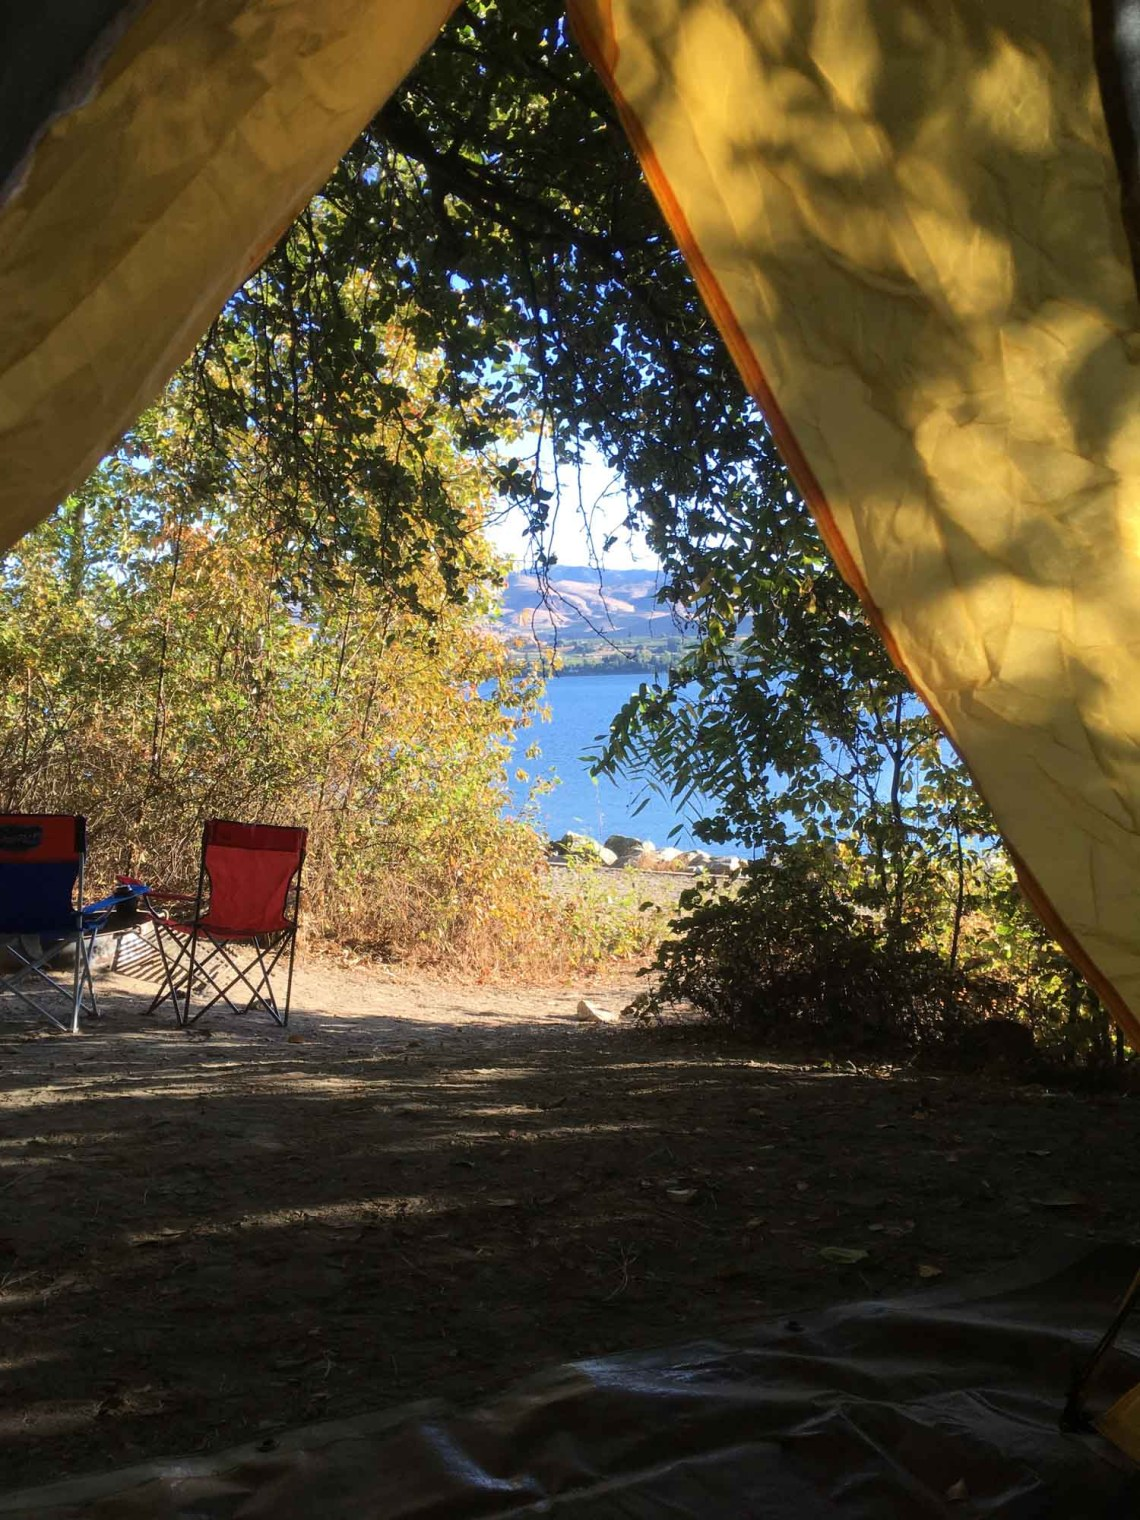 view from inside a tent at lake chelan state park in washington state